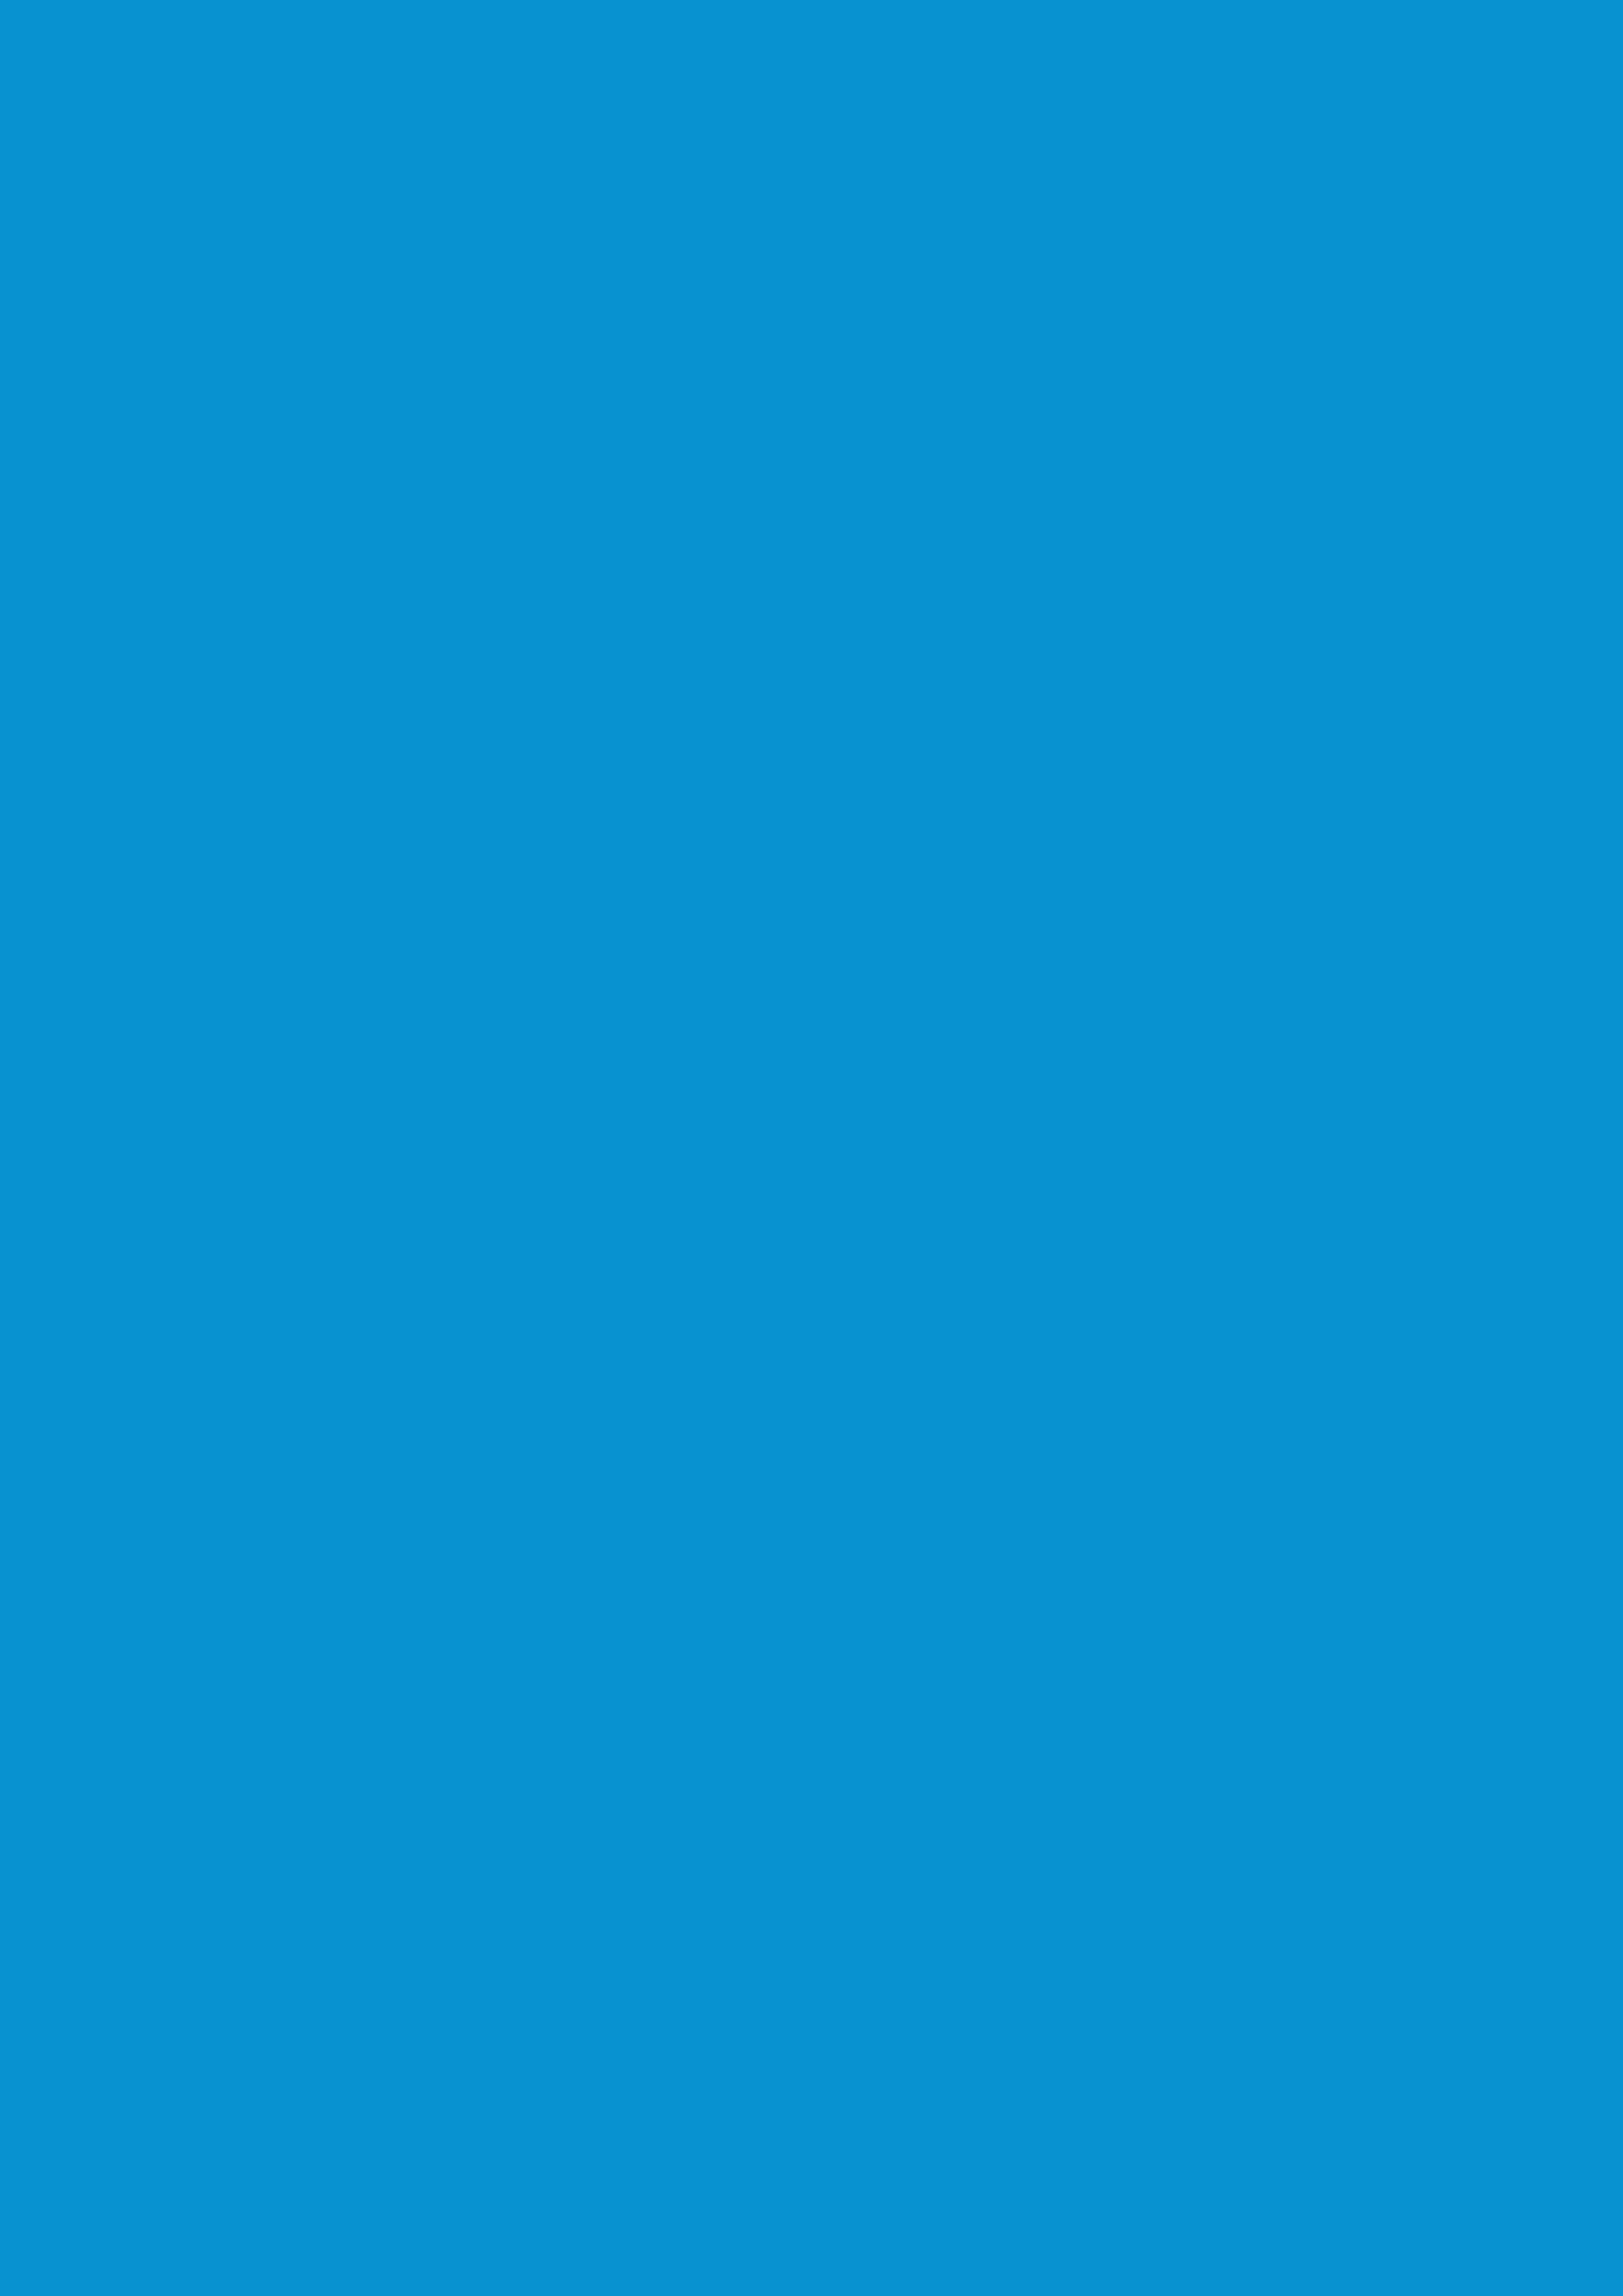 2480x3508 Rich Electric Blue Solid Color Background